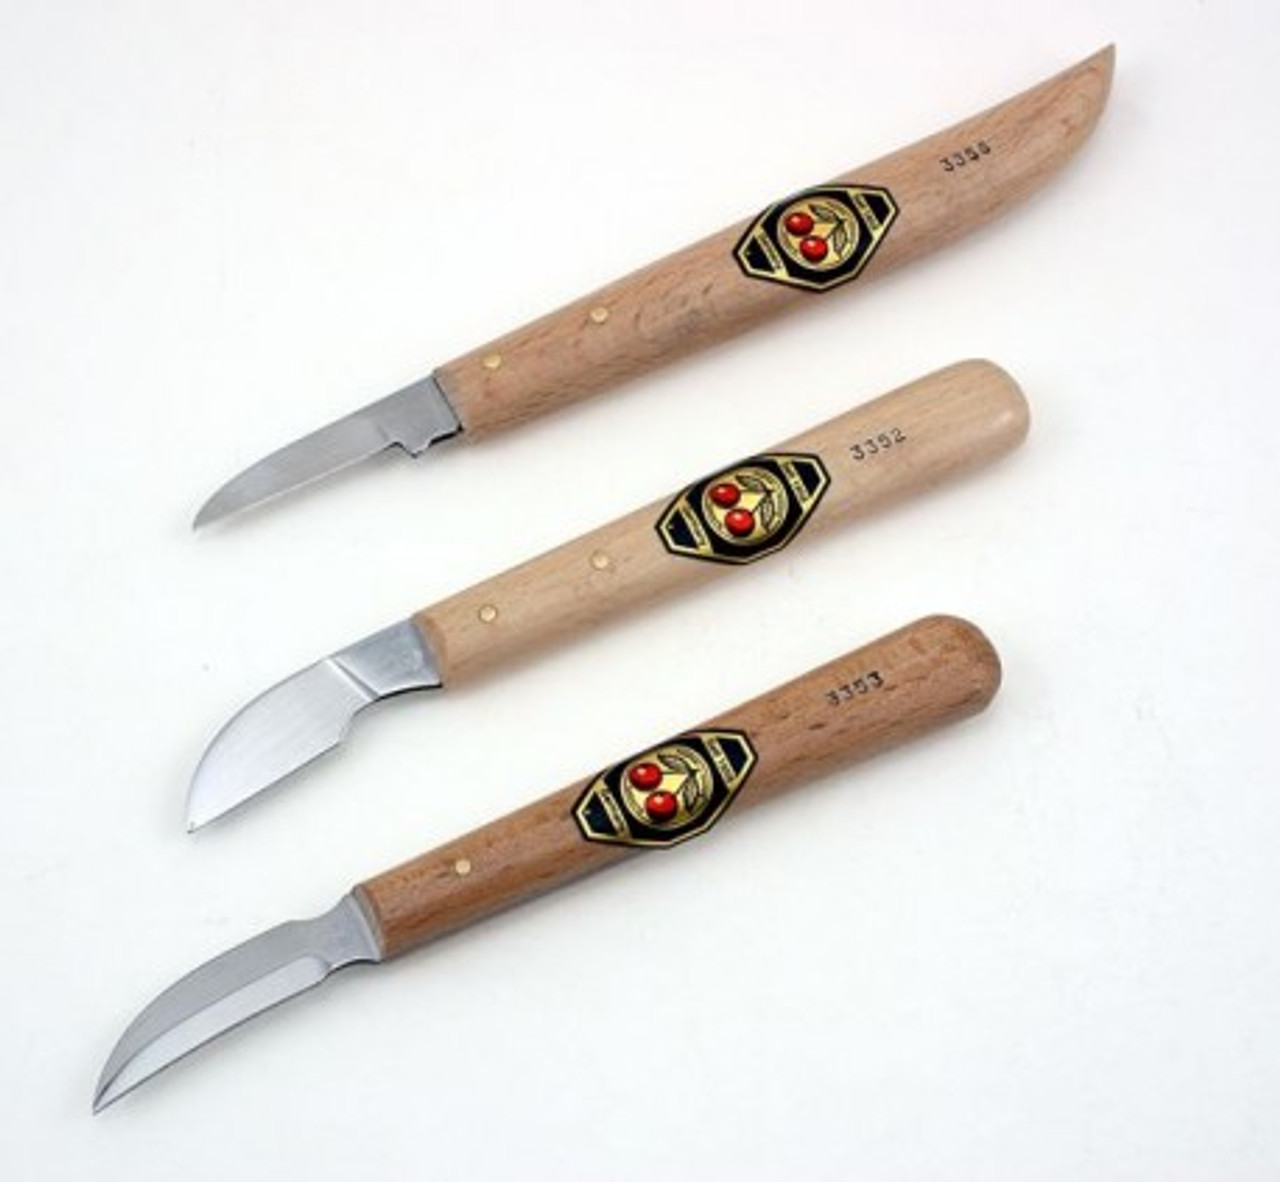 Two Cherries Set of 3 Chip Carving Knives showing all three of the chip carving knives.